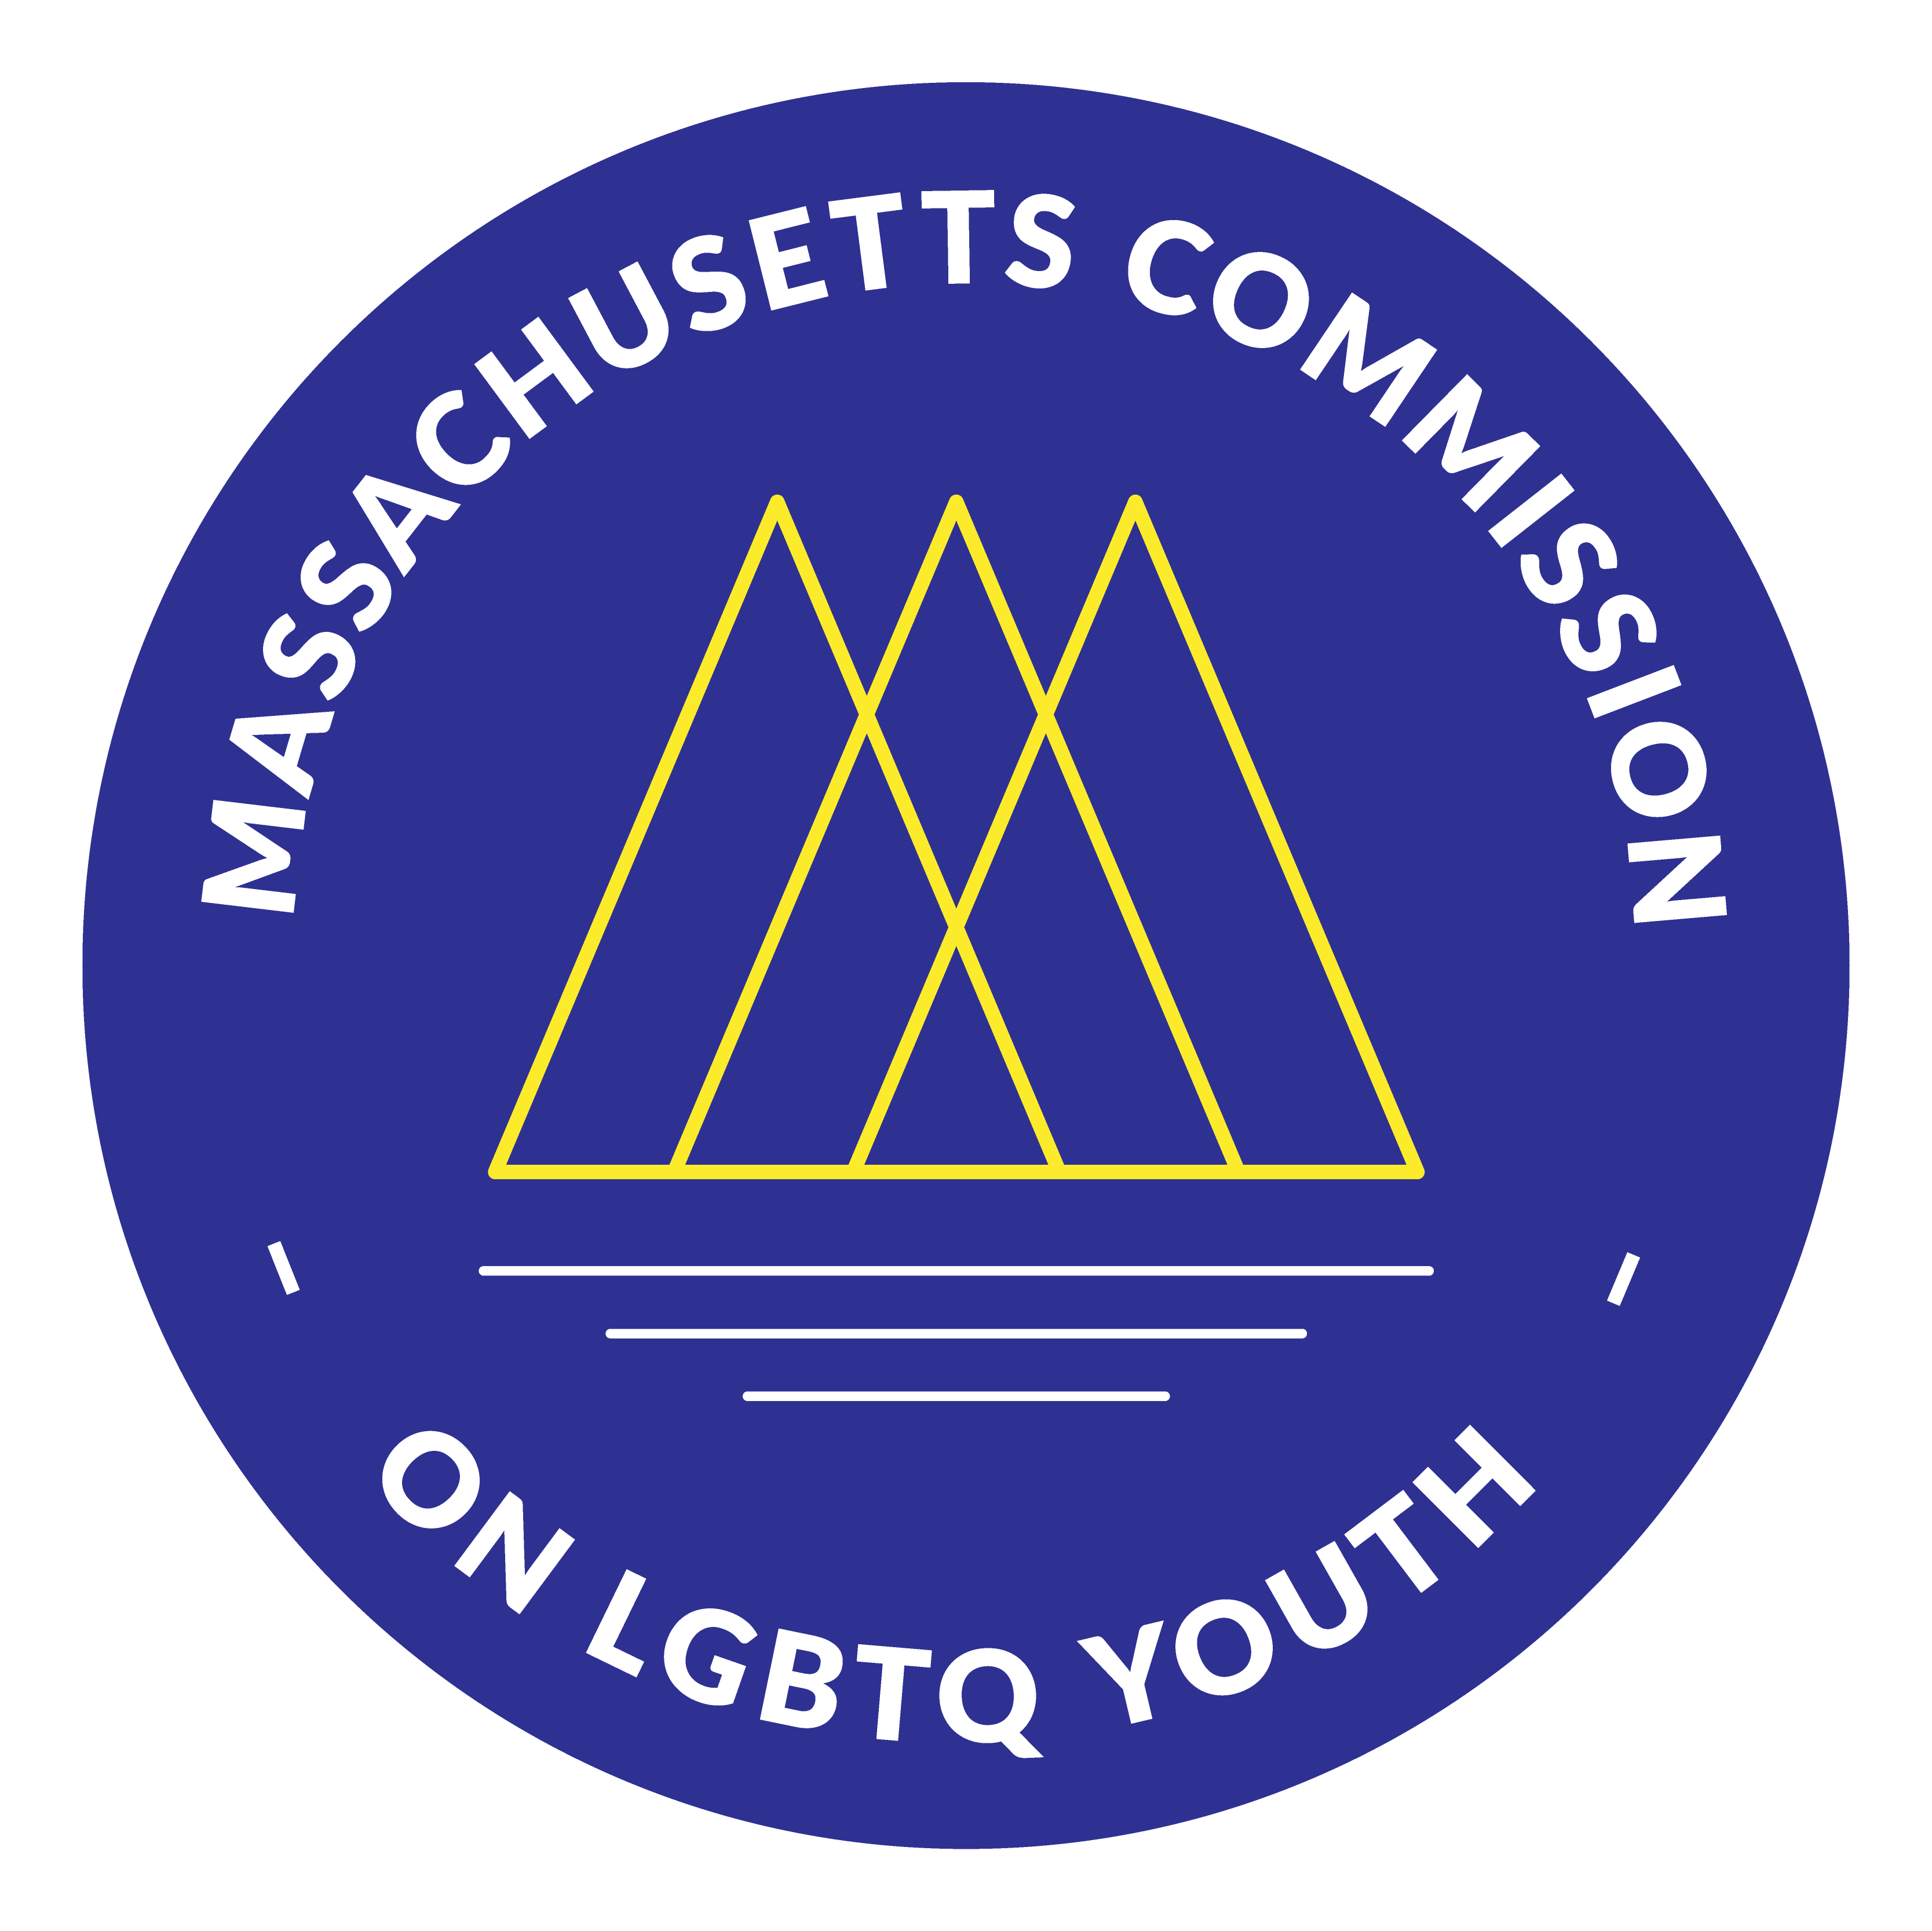 Massachusetts Commission on LGBTQ Youth